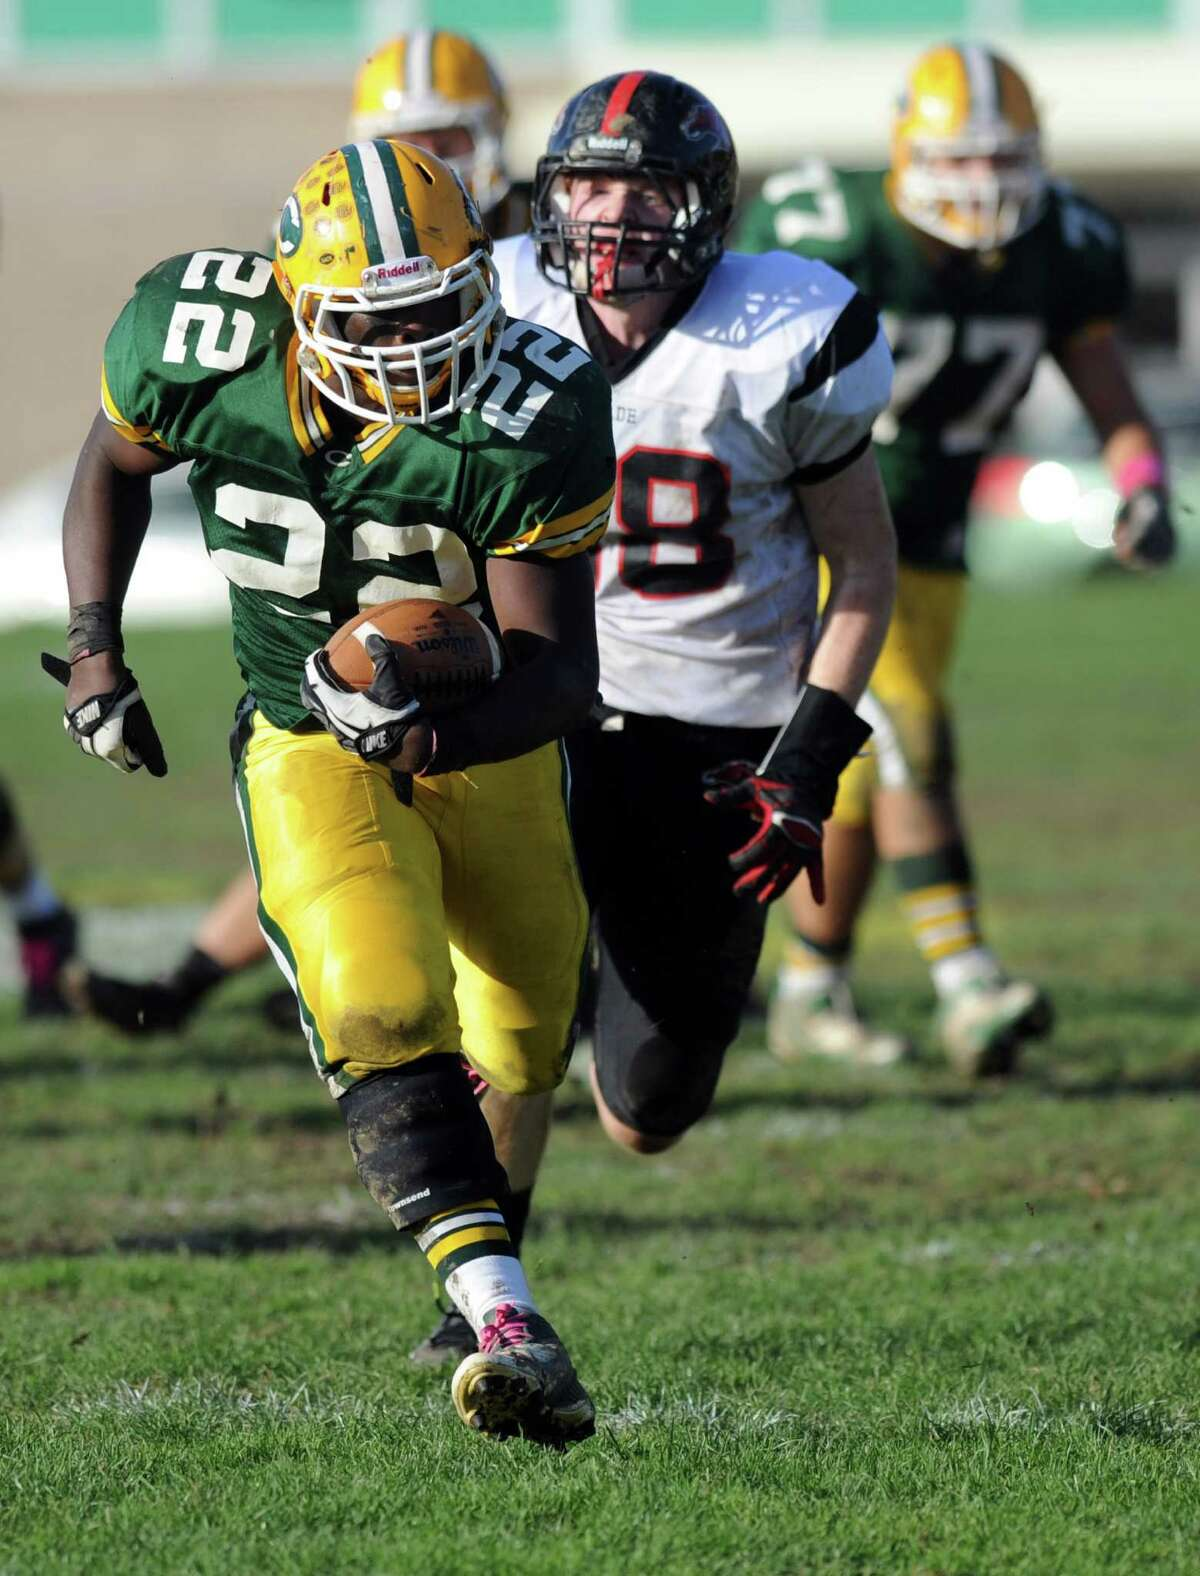 Trinity Catholic's Shaquan Howsie carries the ball during Saturday's football game against Fairfield Warde at Trinity Catholic High School in Stamford, Conn., on October 20, 2012.